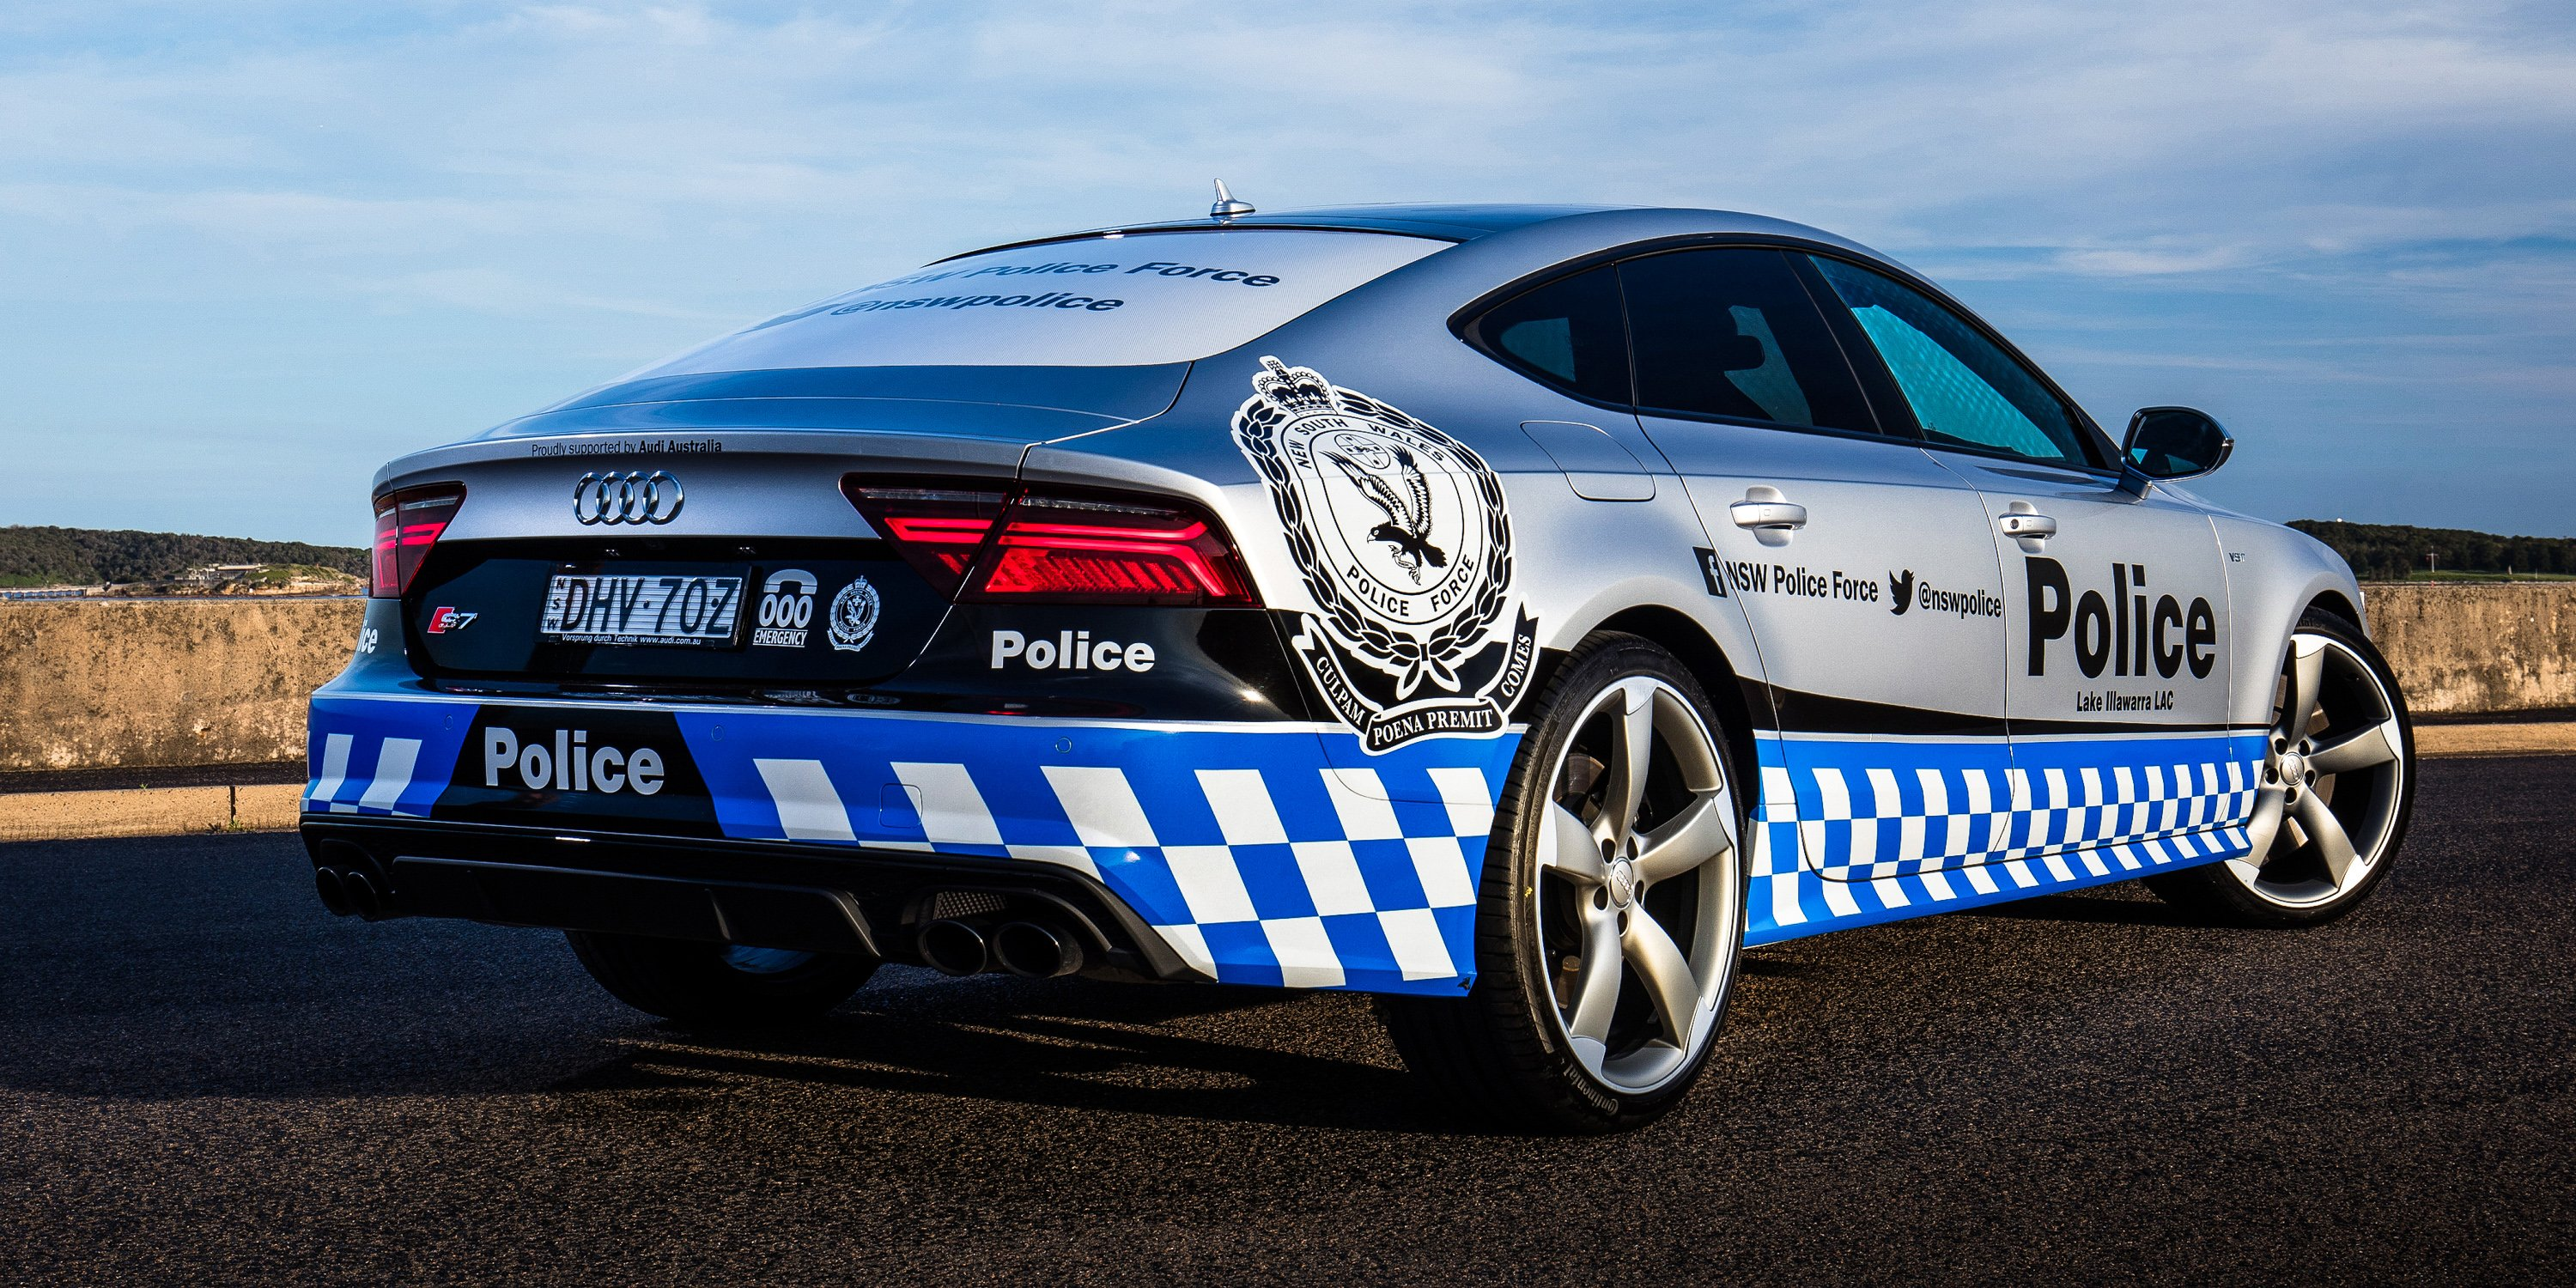 2016 Audi Q8 >> Audi S7 Sportback, BMW i8 to boost police profile - photos ...